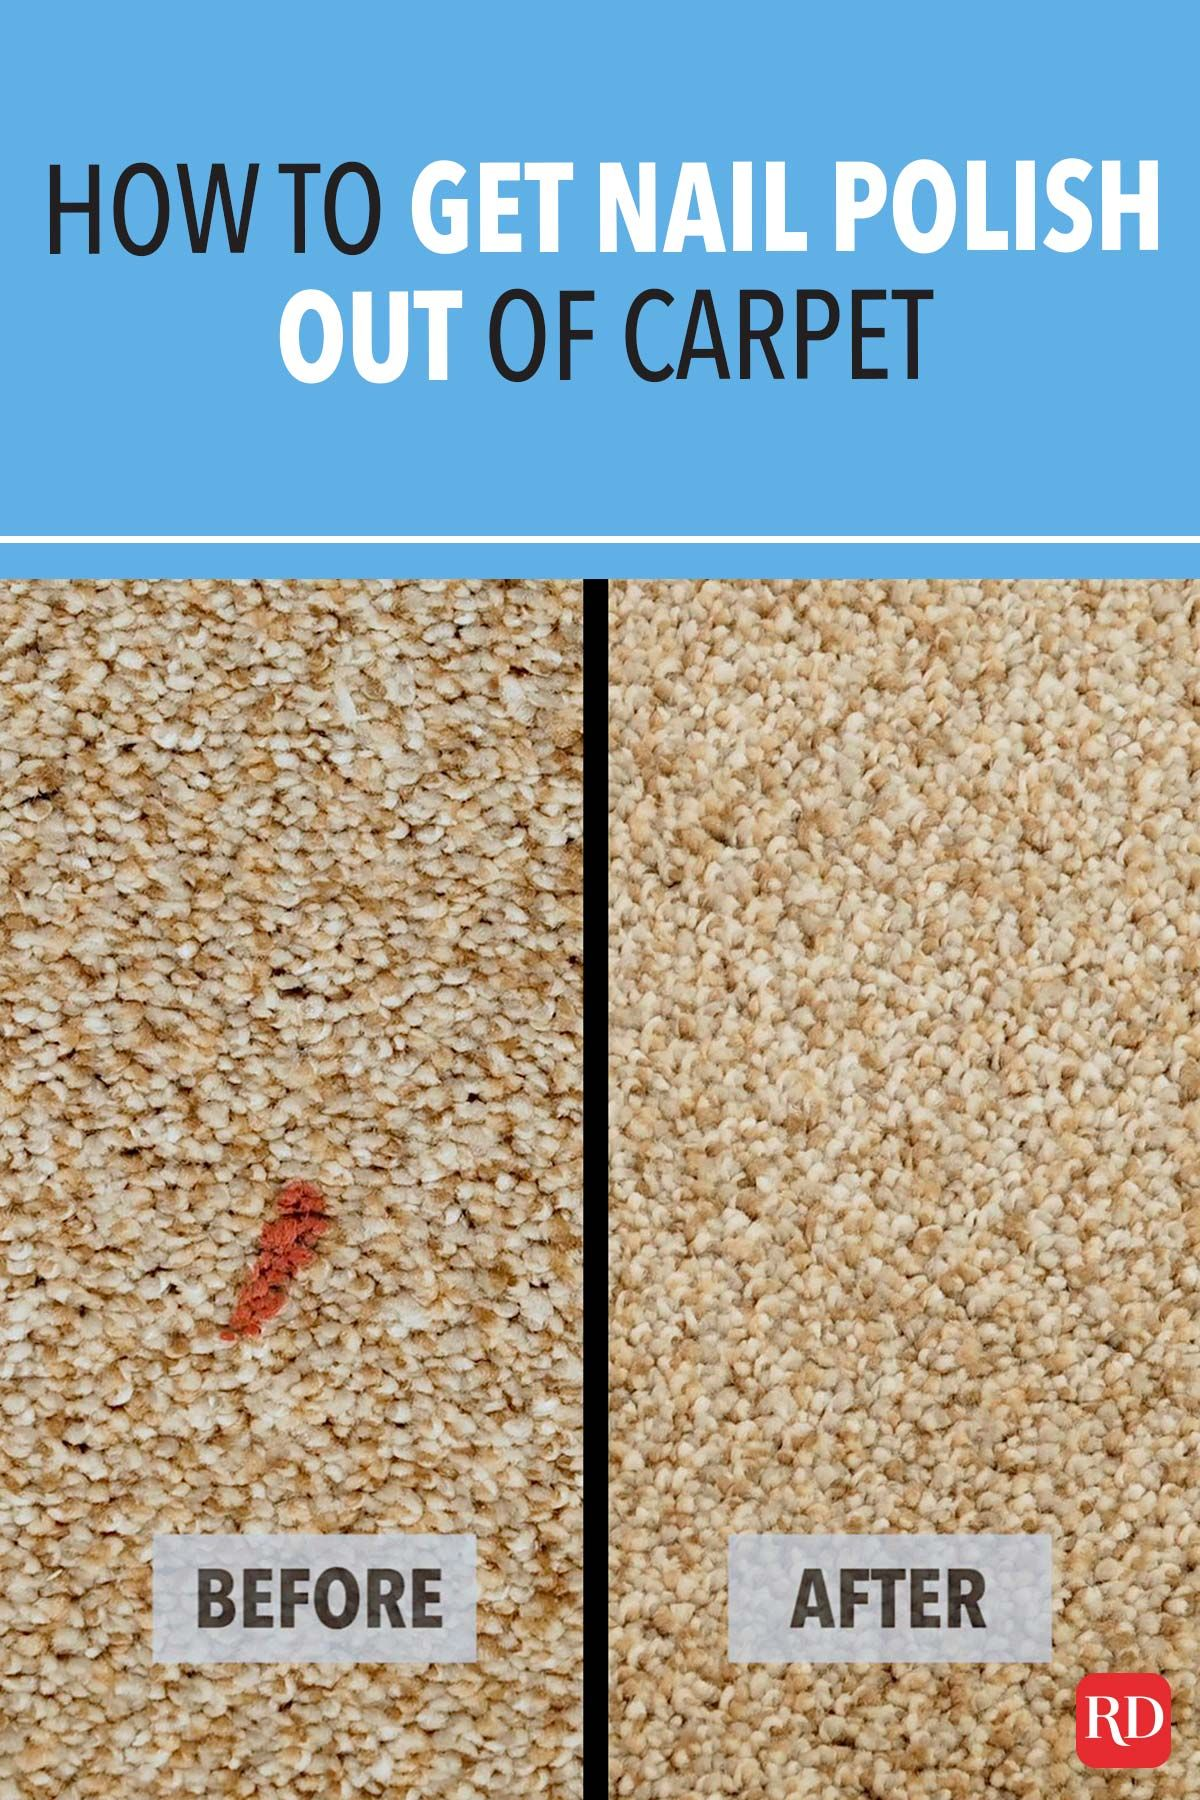 How To Get Nail Polish Out Of Carpet Get Nails Nail Polish Spill Nail Polish